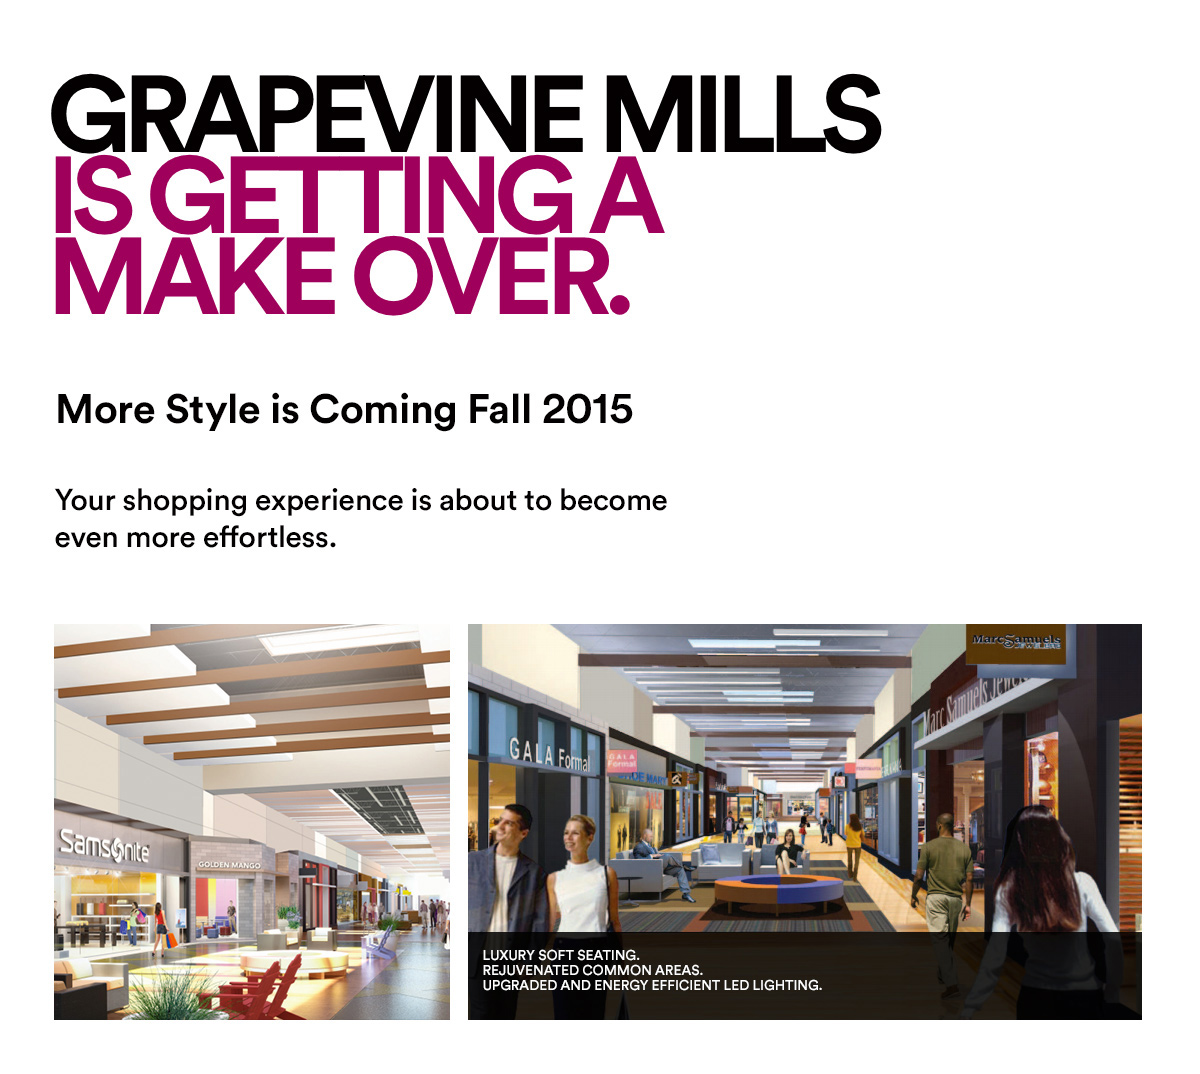 GRAPEVINE MILLS IS GETTING A MAKEOVER